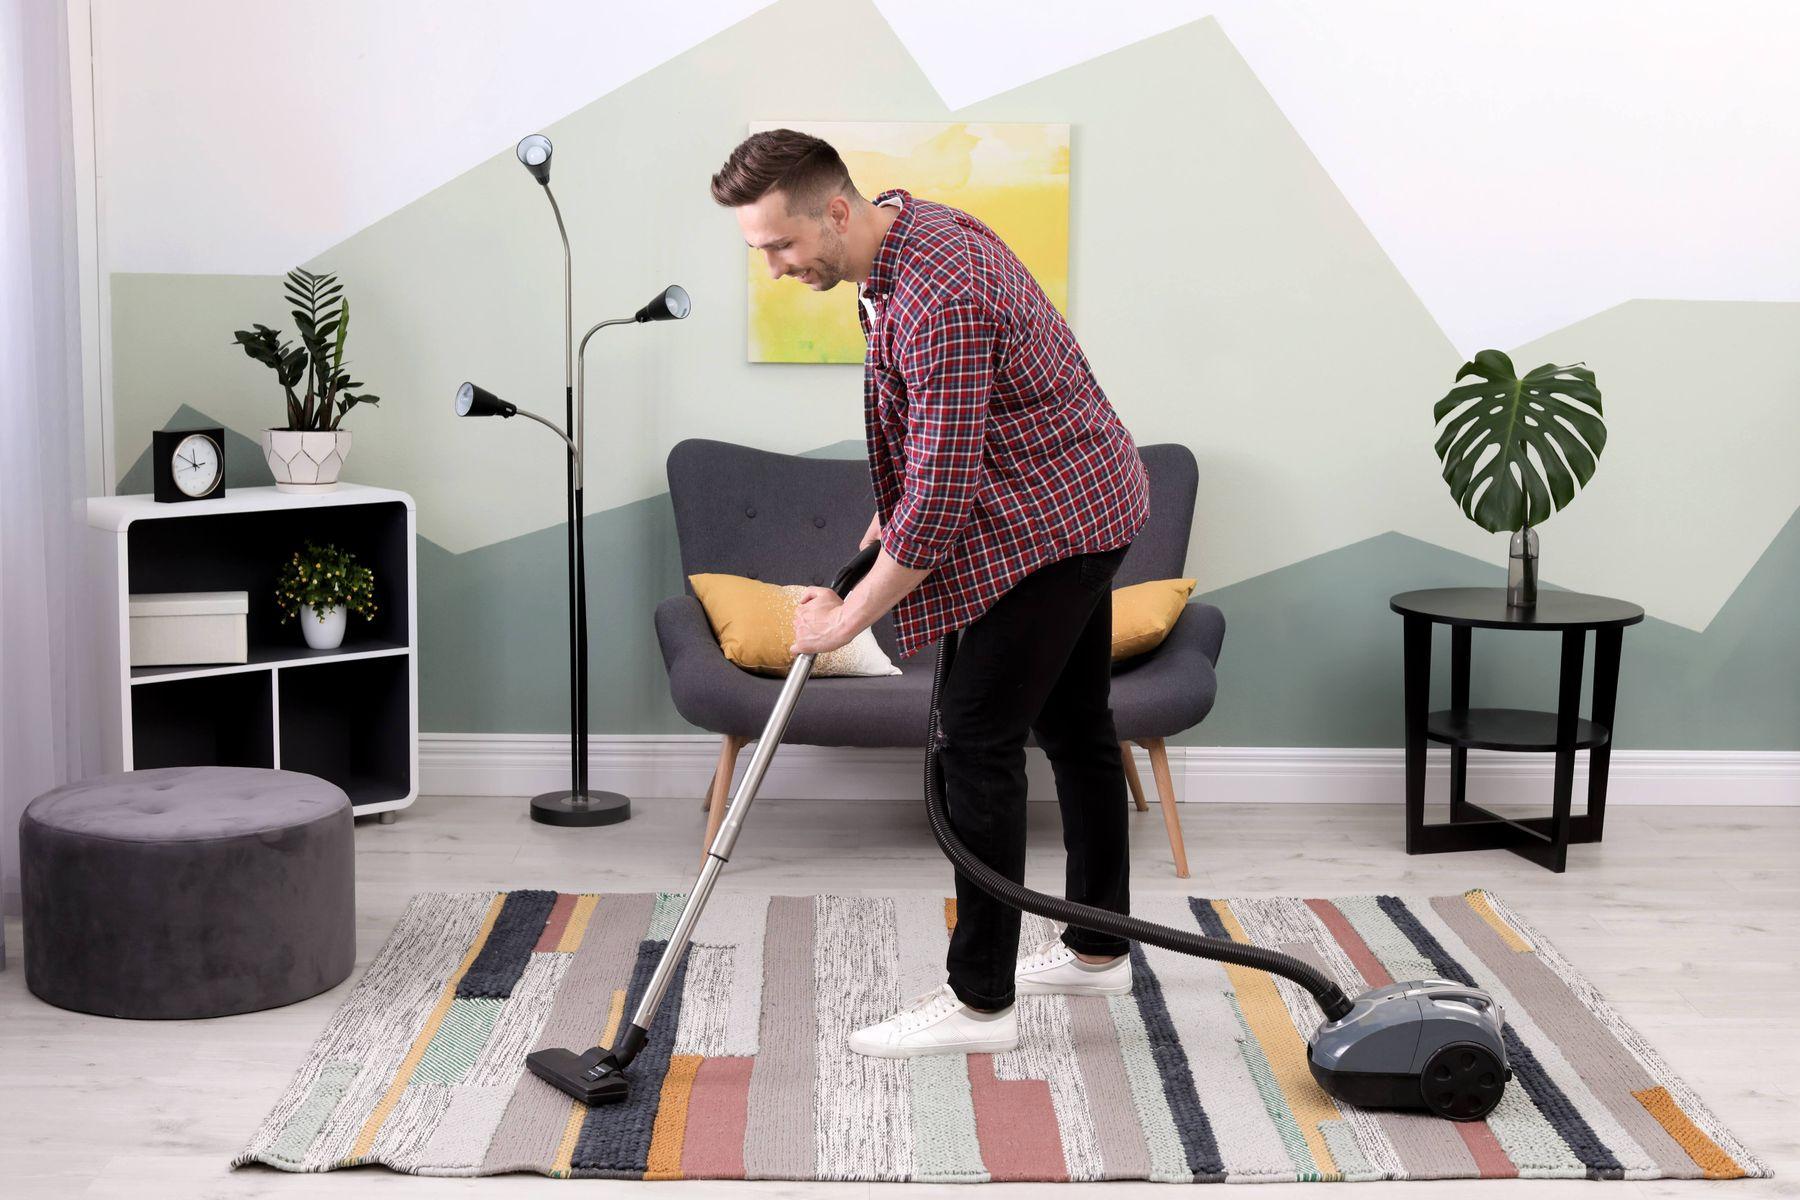 How to Clean Carpets | Top Carpet Cleaning Tips | Cleanipedia